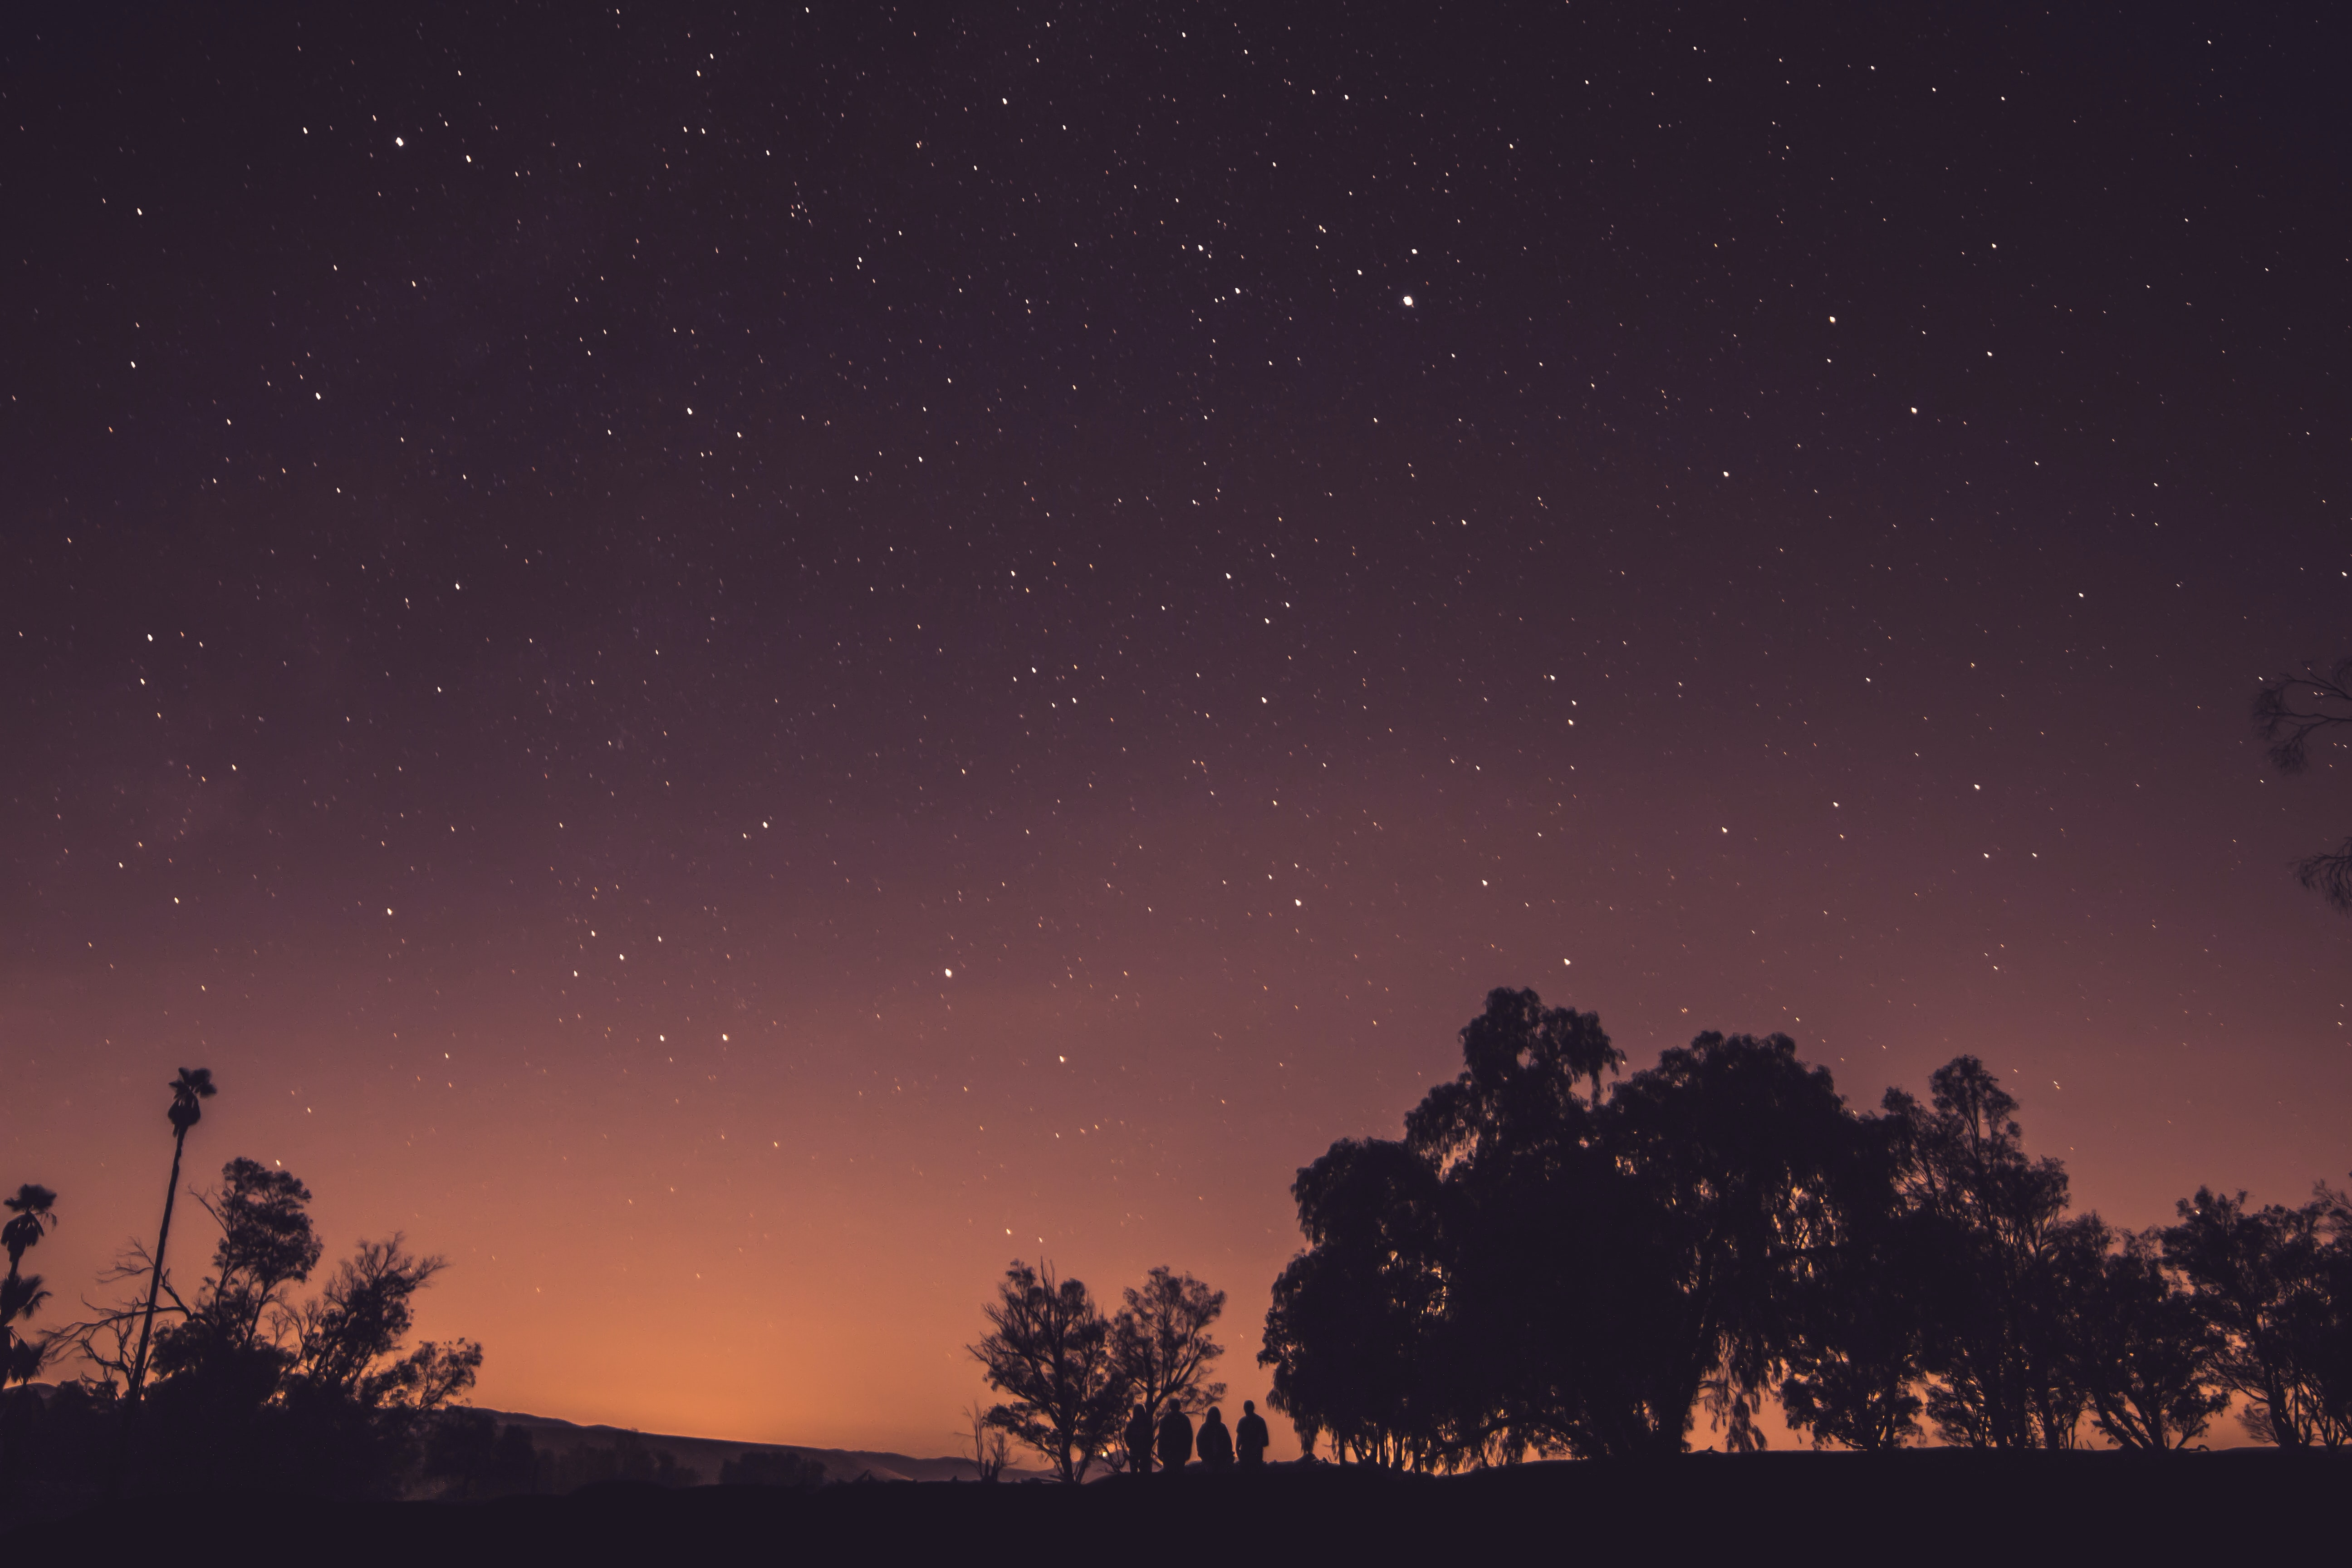 A photo of silhouette trees under a star-filled dark purple sky